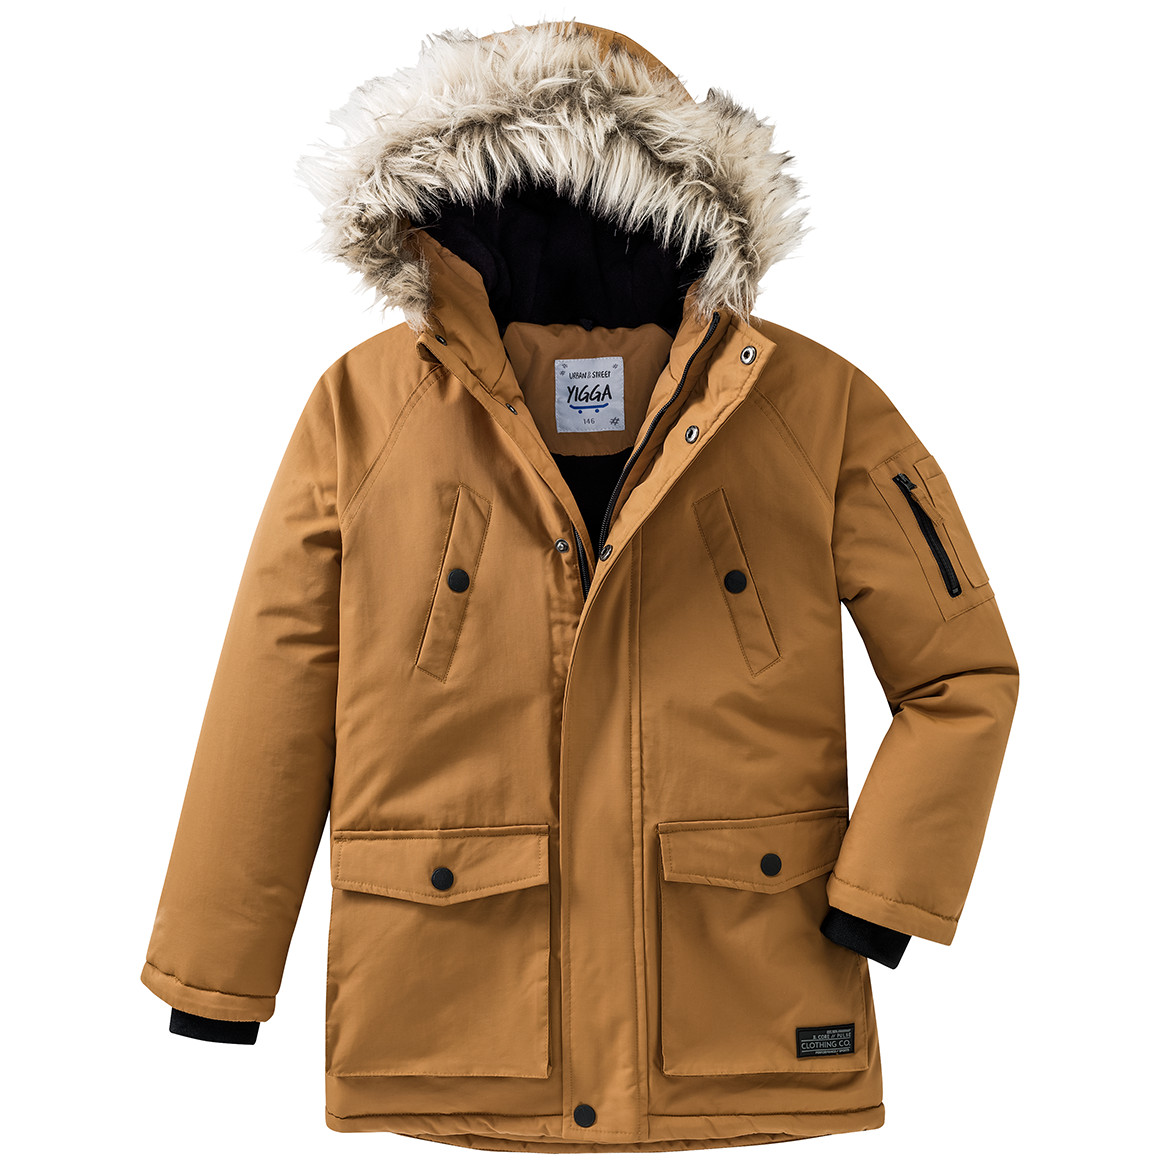 Boysjacken - Jungen Parka mit Fellimitat an der Kapuze - Onlineshop Ernstings family